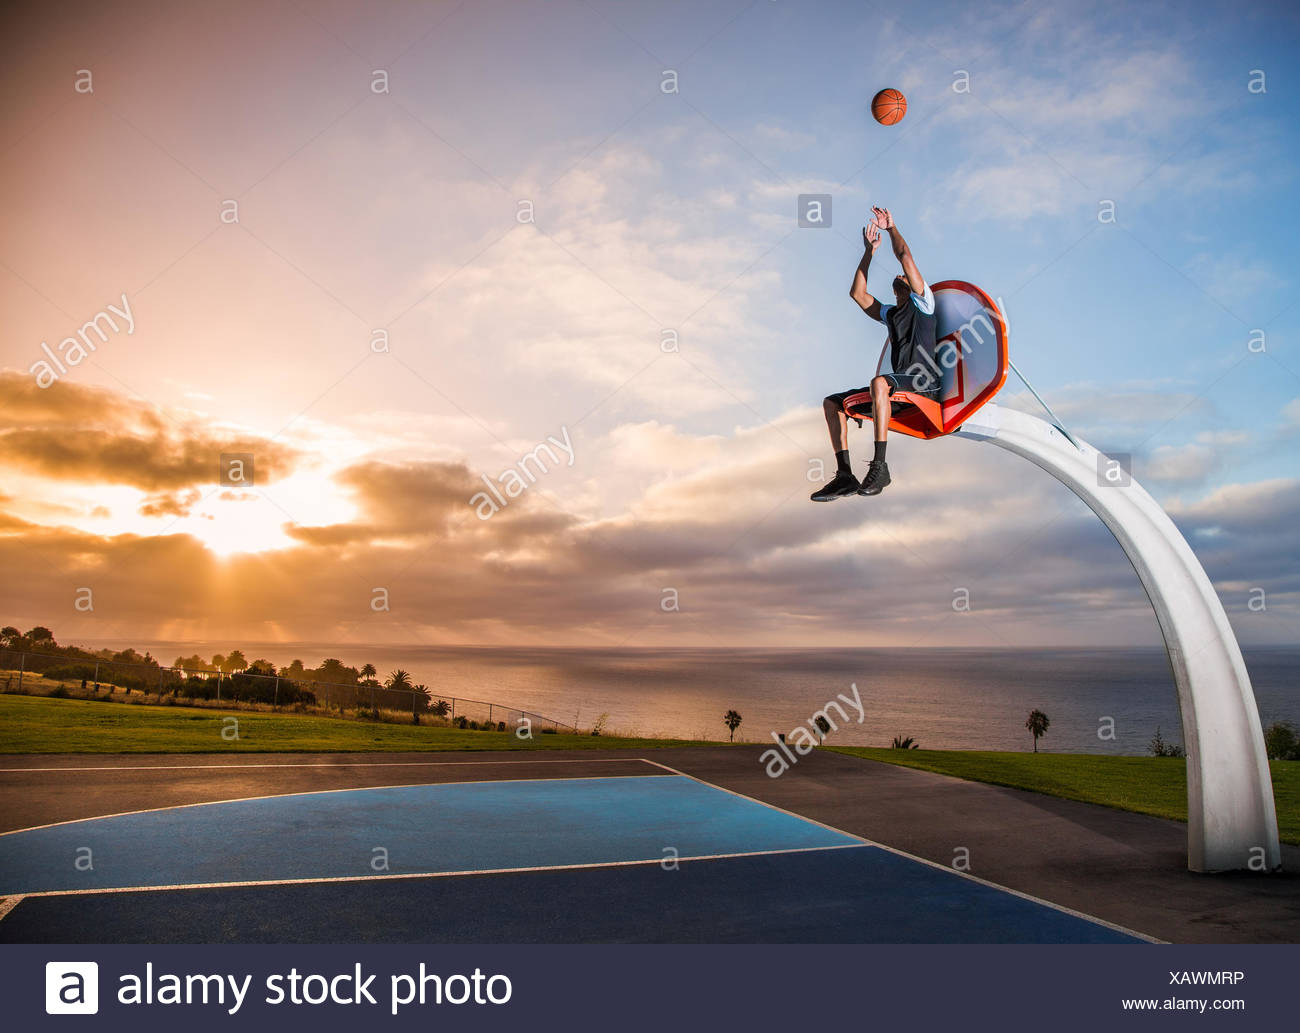 Young man sitting in a basketball hoop in a park, Los Angeles, California, USA - Stock Image